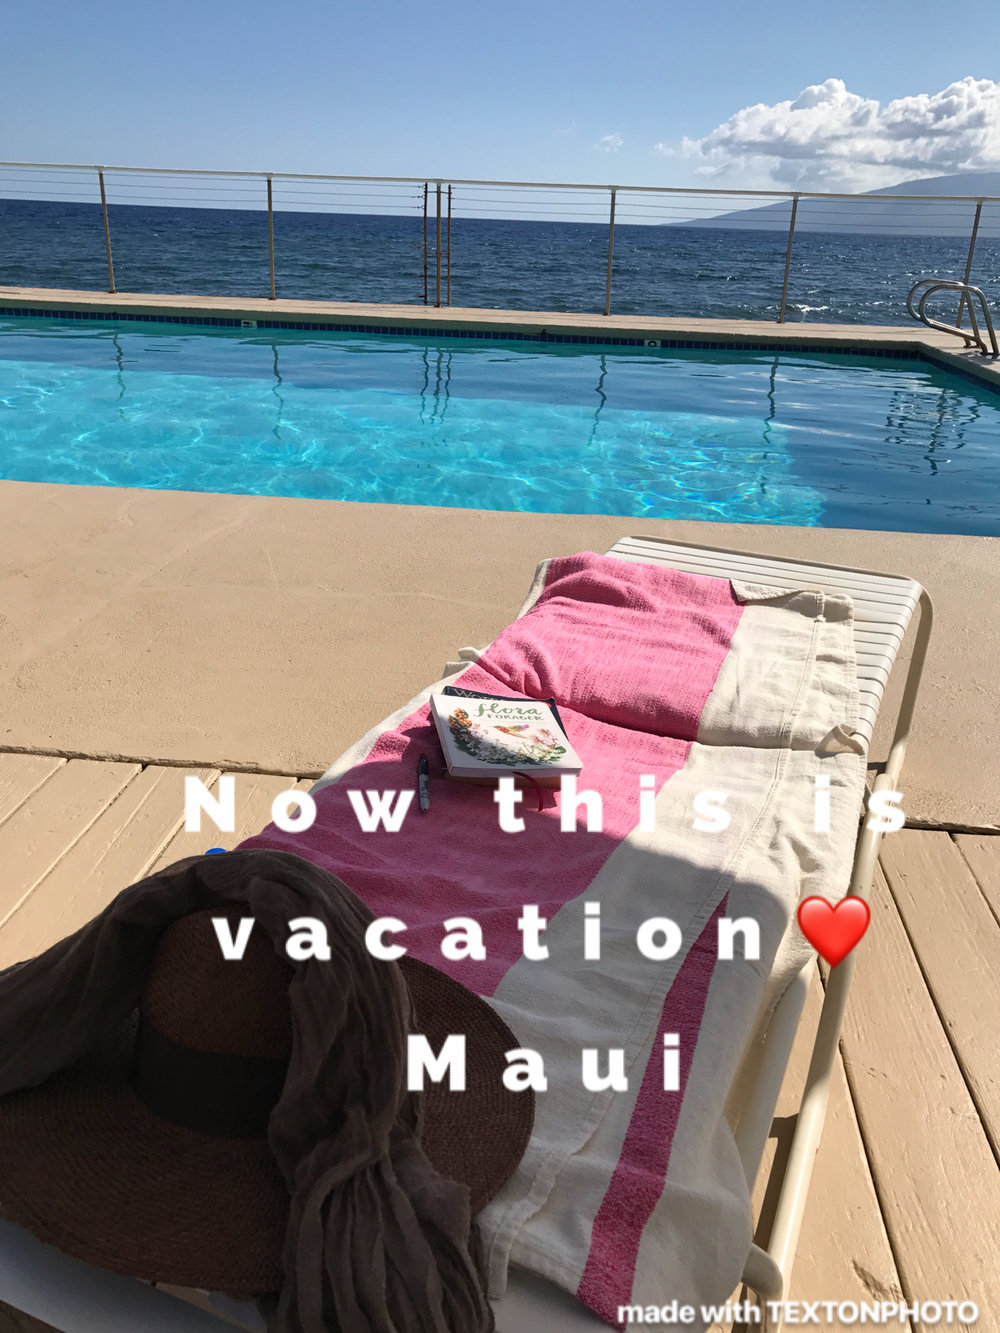 I was fortunate enough to go to Maui for a week! a week ago.  I have been looking forward to this since March and it was just the vacation i needed.  I LOVE vacations where i get to lay around and have no agenda.  When i found this 1933  pool on our little gated place i was in heaven.   I played here and dipped in the pool for hours, reading, taking pics, doing nothing.   Very different from my normal life back in Oakland.  In 2 weeks my working life will change dramatically.  I luckily got to lay around resting before the change happens.  The change is a great one.  I have been a teacher at Aveda for 4 yrs and I love my job, BUT, Aloeswood is calling. and i  have been WAITING and WORKING 2 jobs for 2 + years full time for THIS very moment and i am going to appreciate every second that goes into creating my little dream.  So Maui gave me the time to drift away, do nothing and dream as much as I can right now.... its hard to think and be creative when your busy with work so this was a much needed breather.  My main objective to to be healthy, because , without that i cannot live a vibrant life... i cannot work etc..  What that means is everyday i will spend my mornings sweating, breathing, stretching and journaling, AND cooking my own food and being grateful!   EVERY DAY!!!!!!! can you believe it!  I will soon bring all of this to the Annex and teach morning yoga/meditation classes that will be gentle but have purpose.  Im going to put my Christy twist on them and have a mini facial component and some sort of  beautiful healthy drink offering as well.  I CANT WAIT.  2 more weeks and then i take a mini reboot weekend with a girlfriend THEN August is MINE to create.   Aloeswood is amazing and growing.  I never knew it would be after all these years that my dream and passion are being expressed so fully.    Hold onto your dreams everyone, never let go.  Peace In and out  Christy